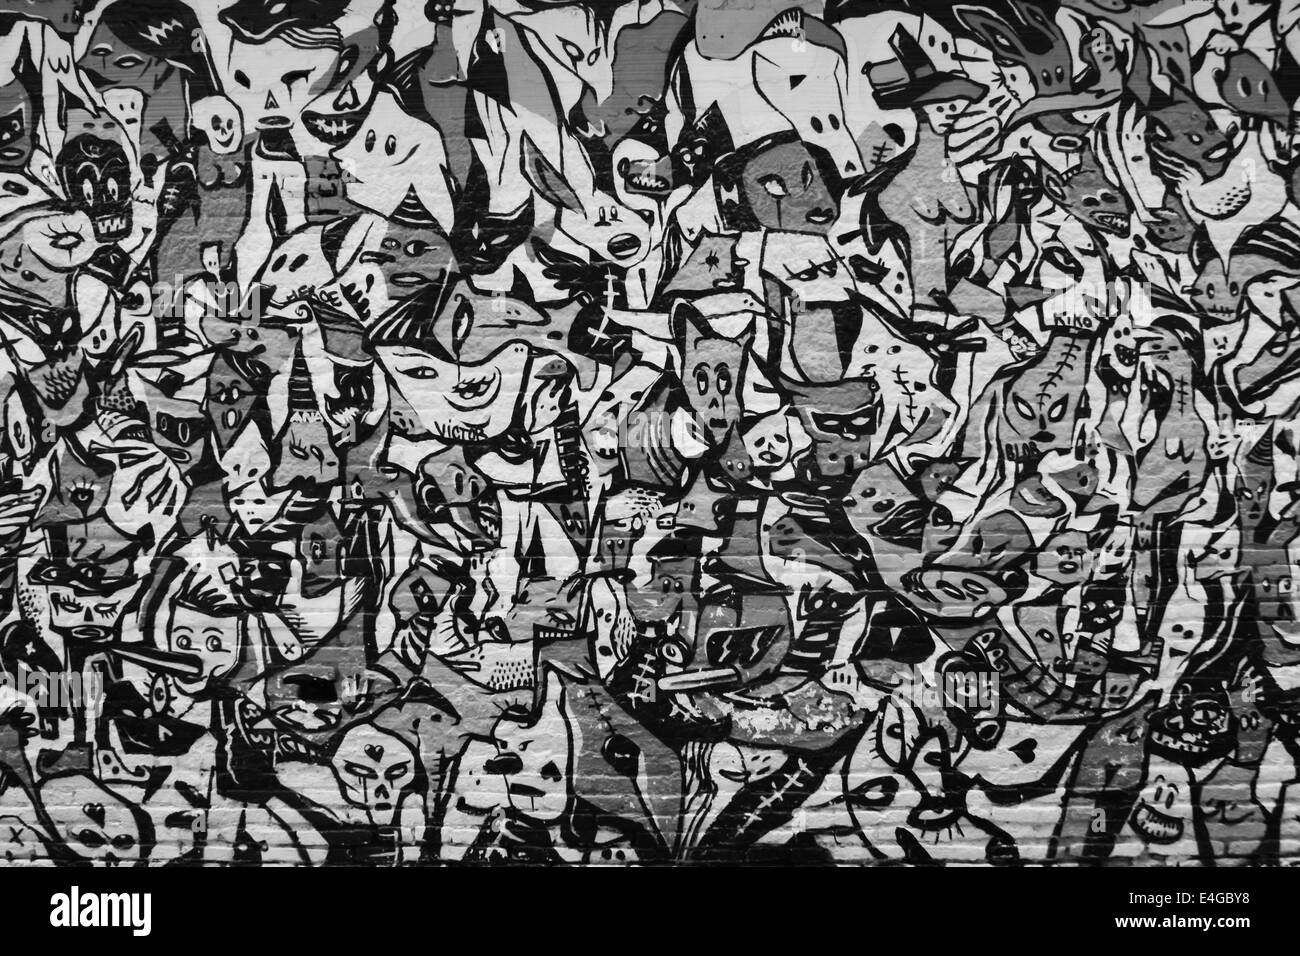 Chaos, foule, graffiti, image abstraite Photo Stock